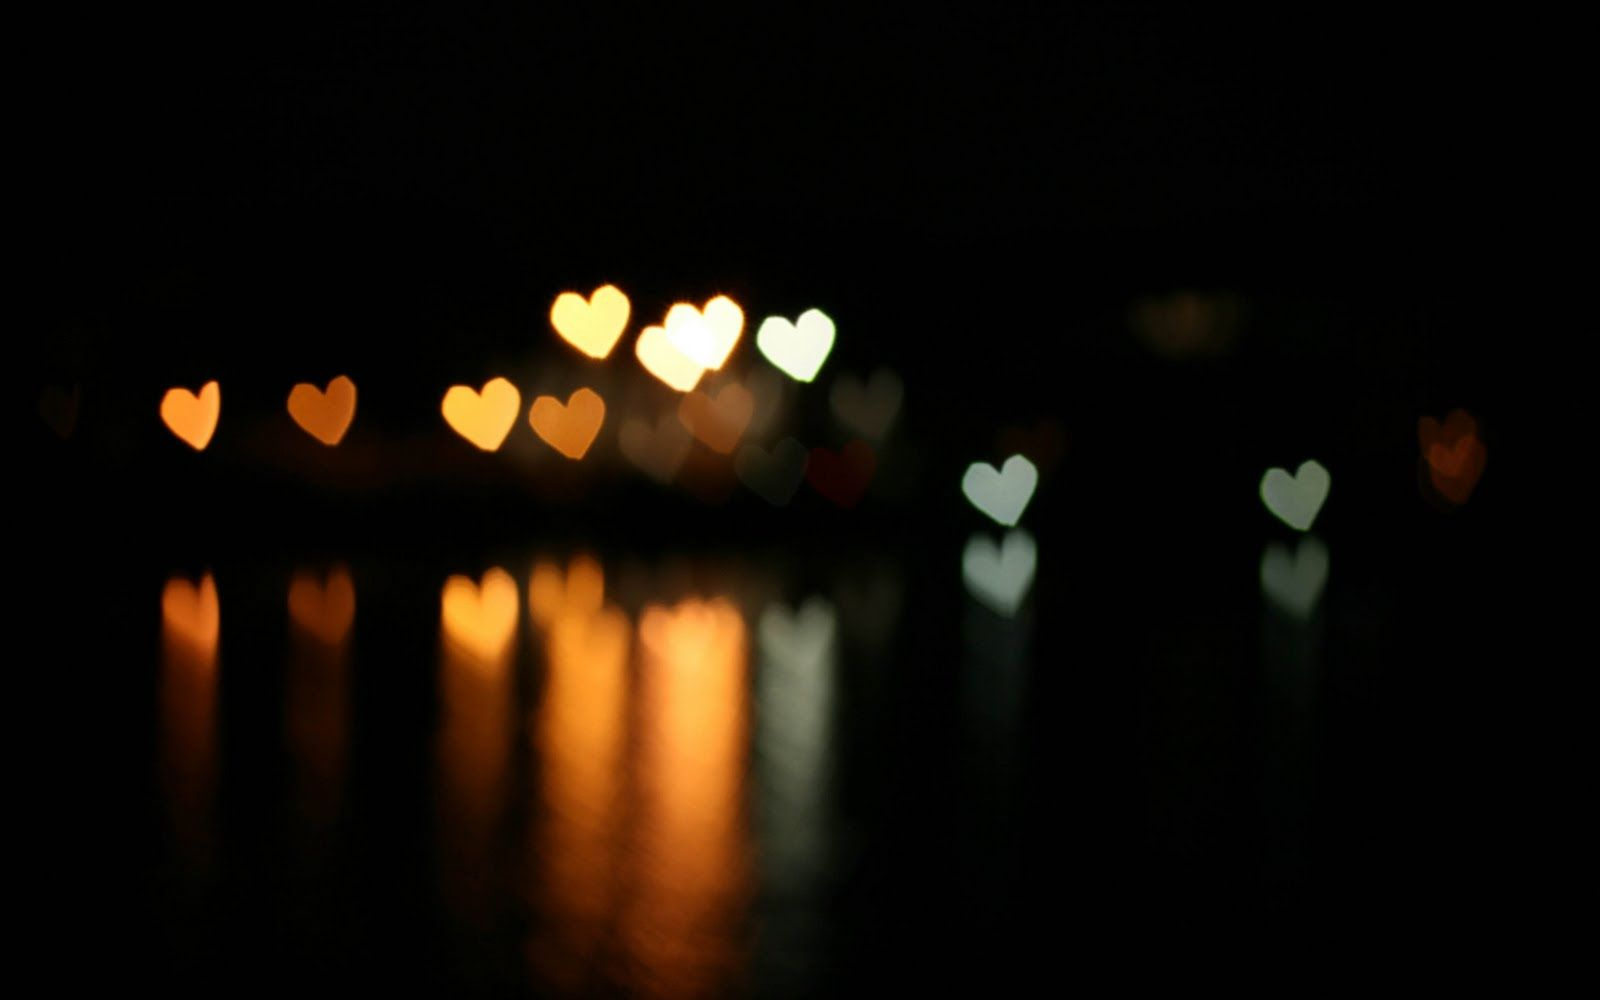 Love Wallpaper Effect Bokeh Hearts Dark Background The Reflection